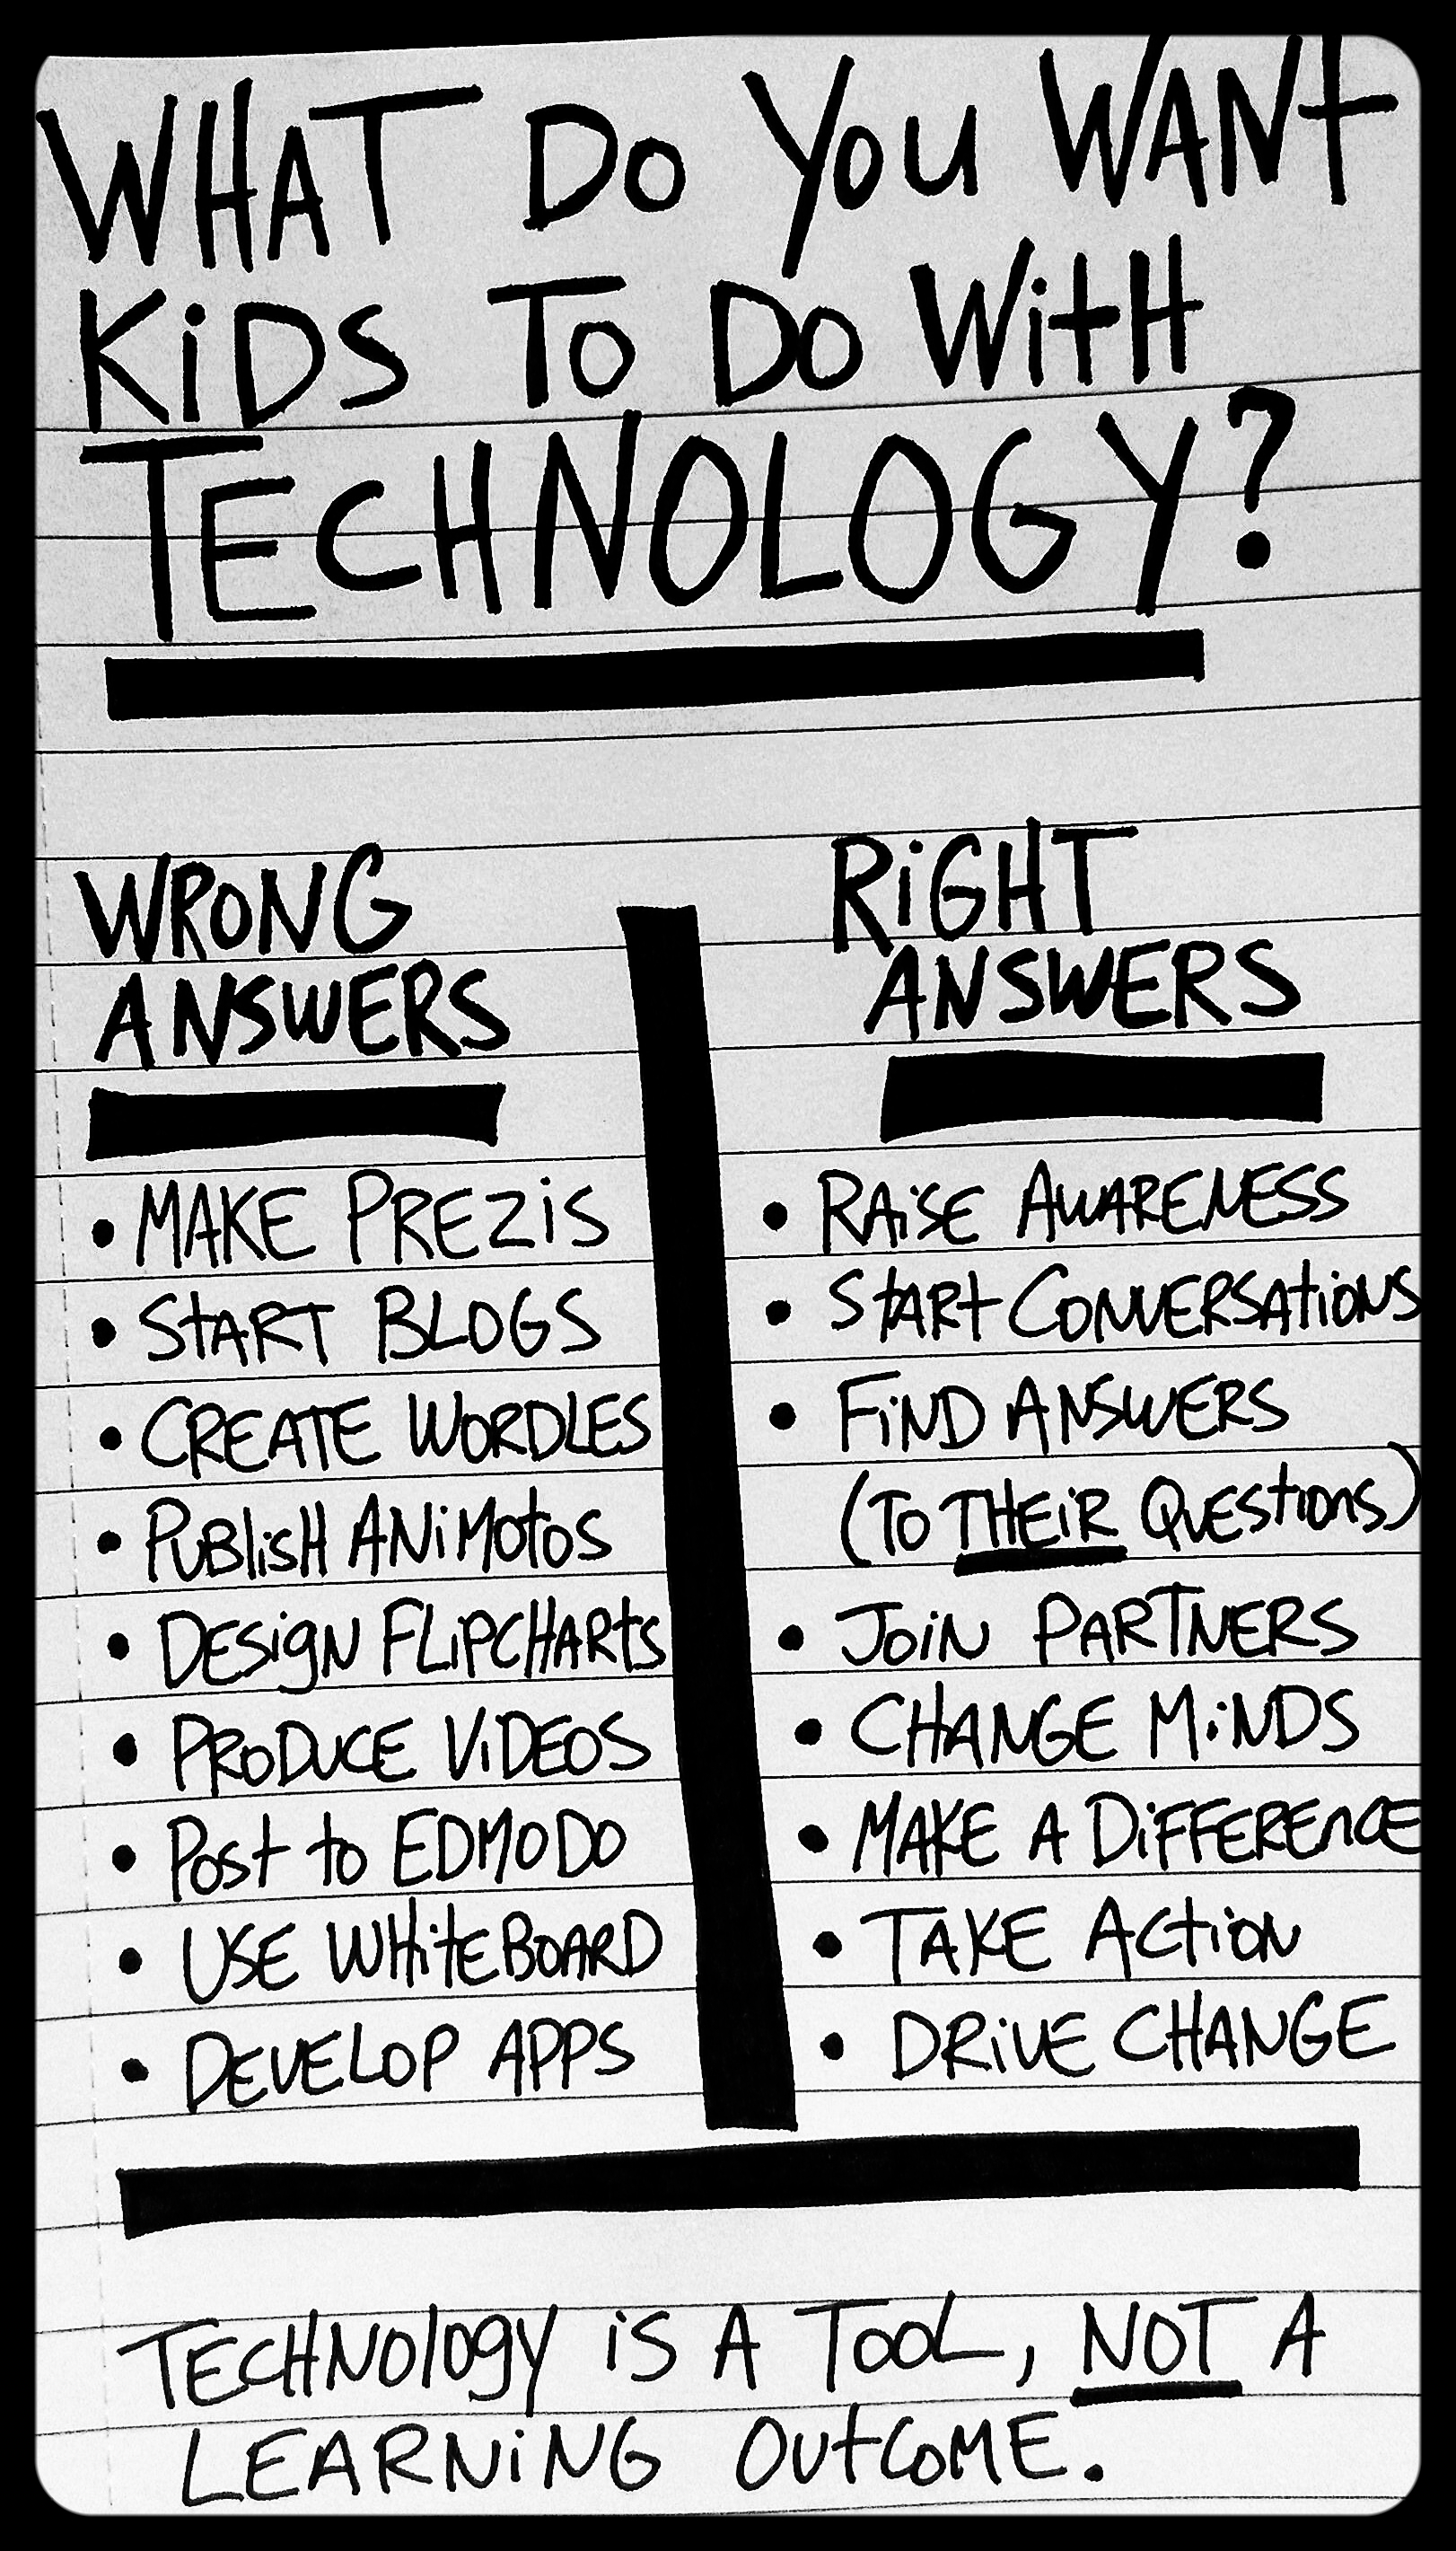 Cheat Sheet: What do you want kids to do with technology? By Bill Ferriter